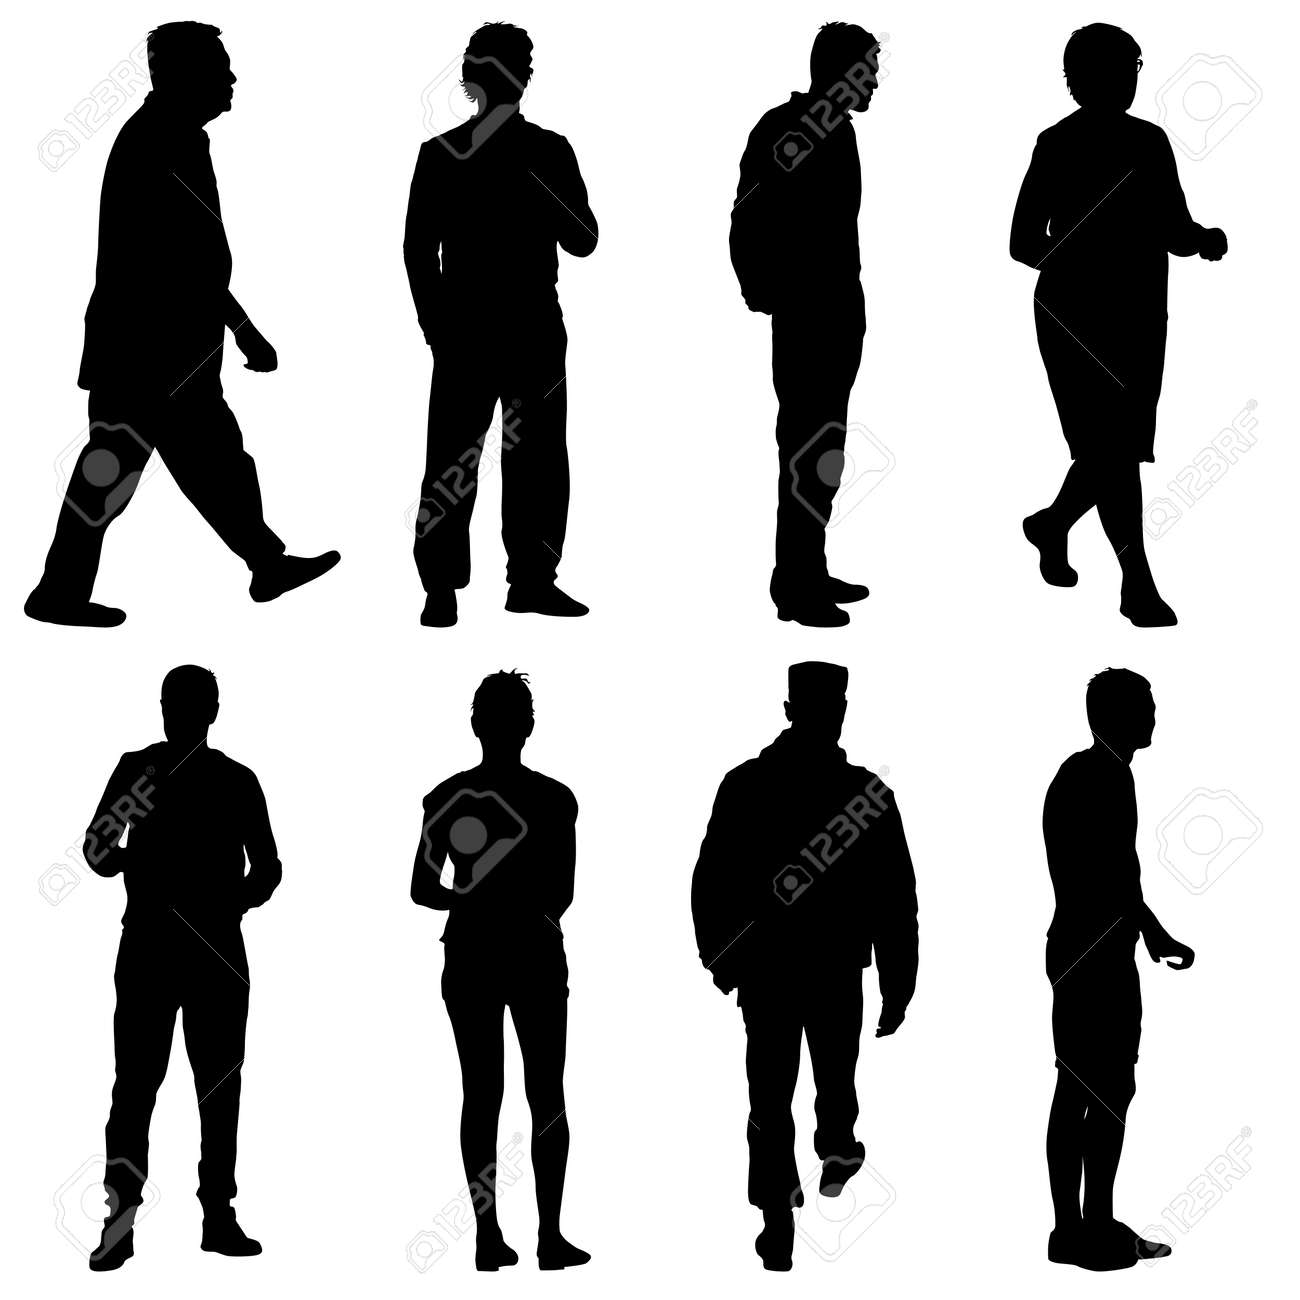 Black silhouette group of people standing in various poses. - 126469538